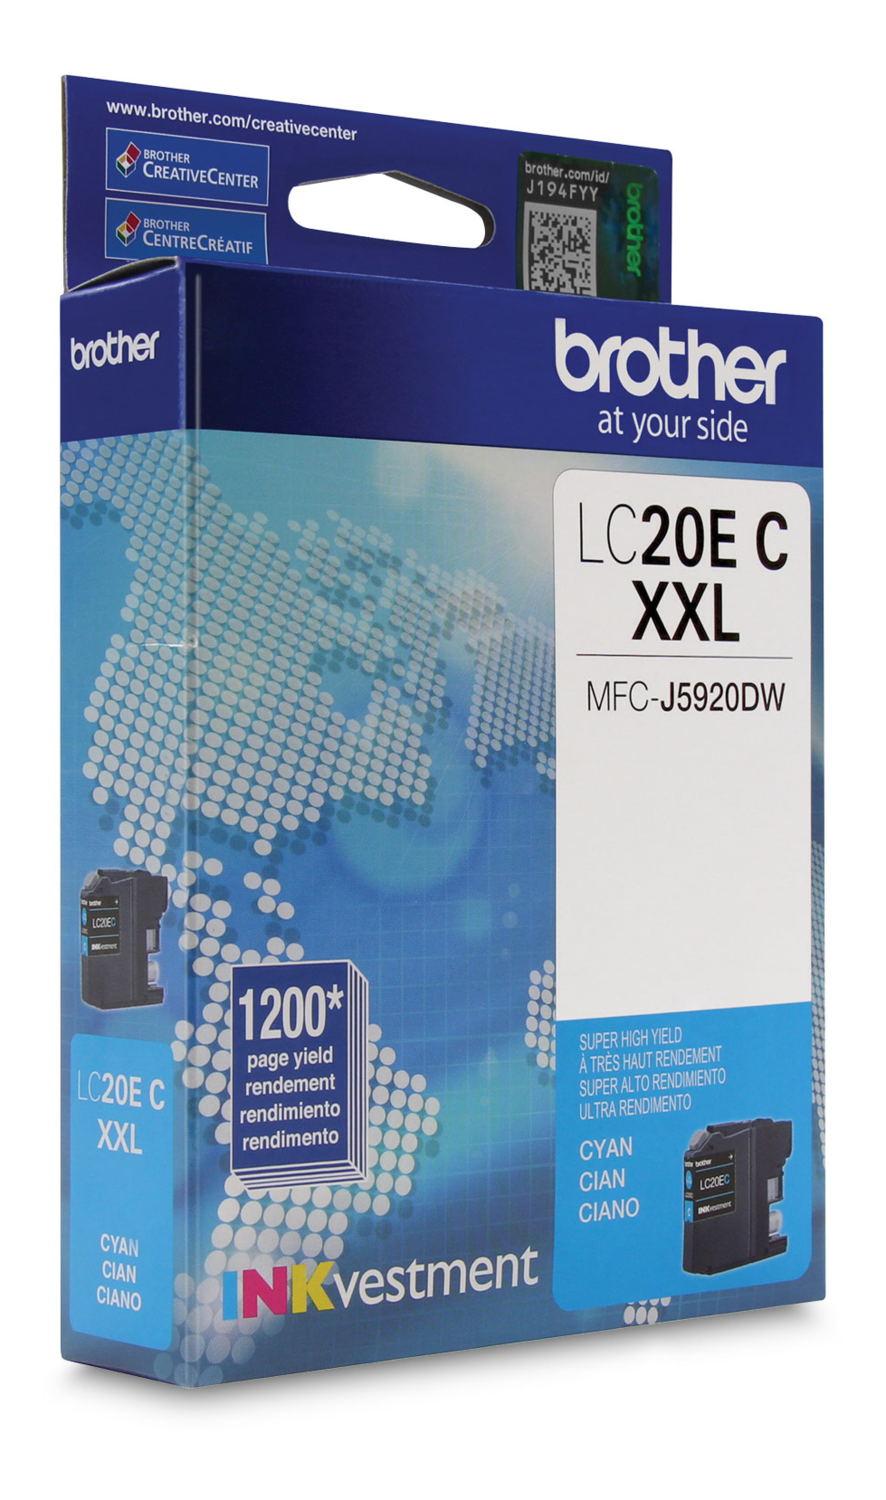 Brother Ink Lc20Ecs Cyan